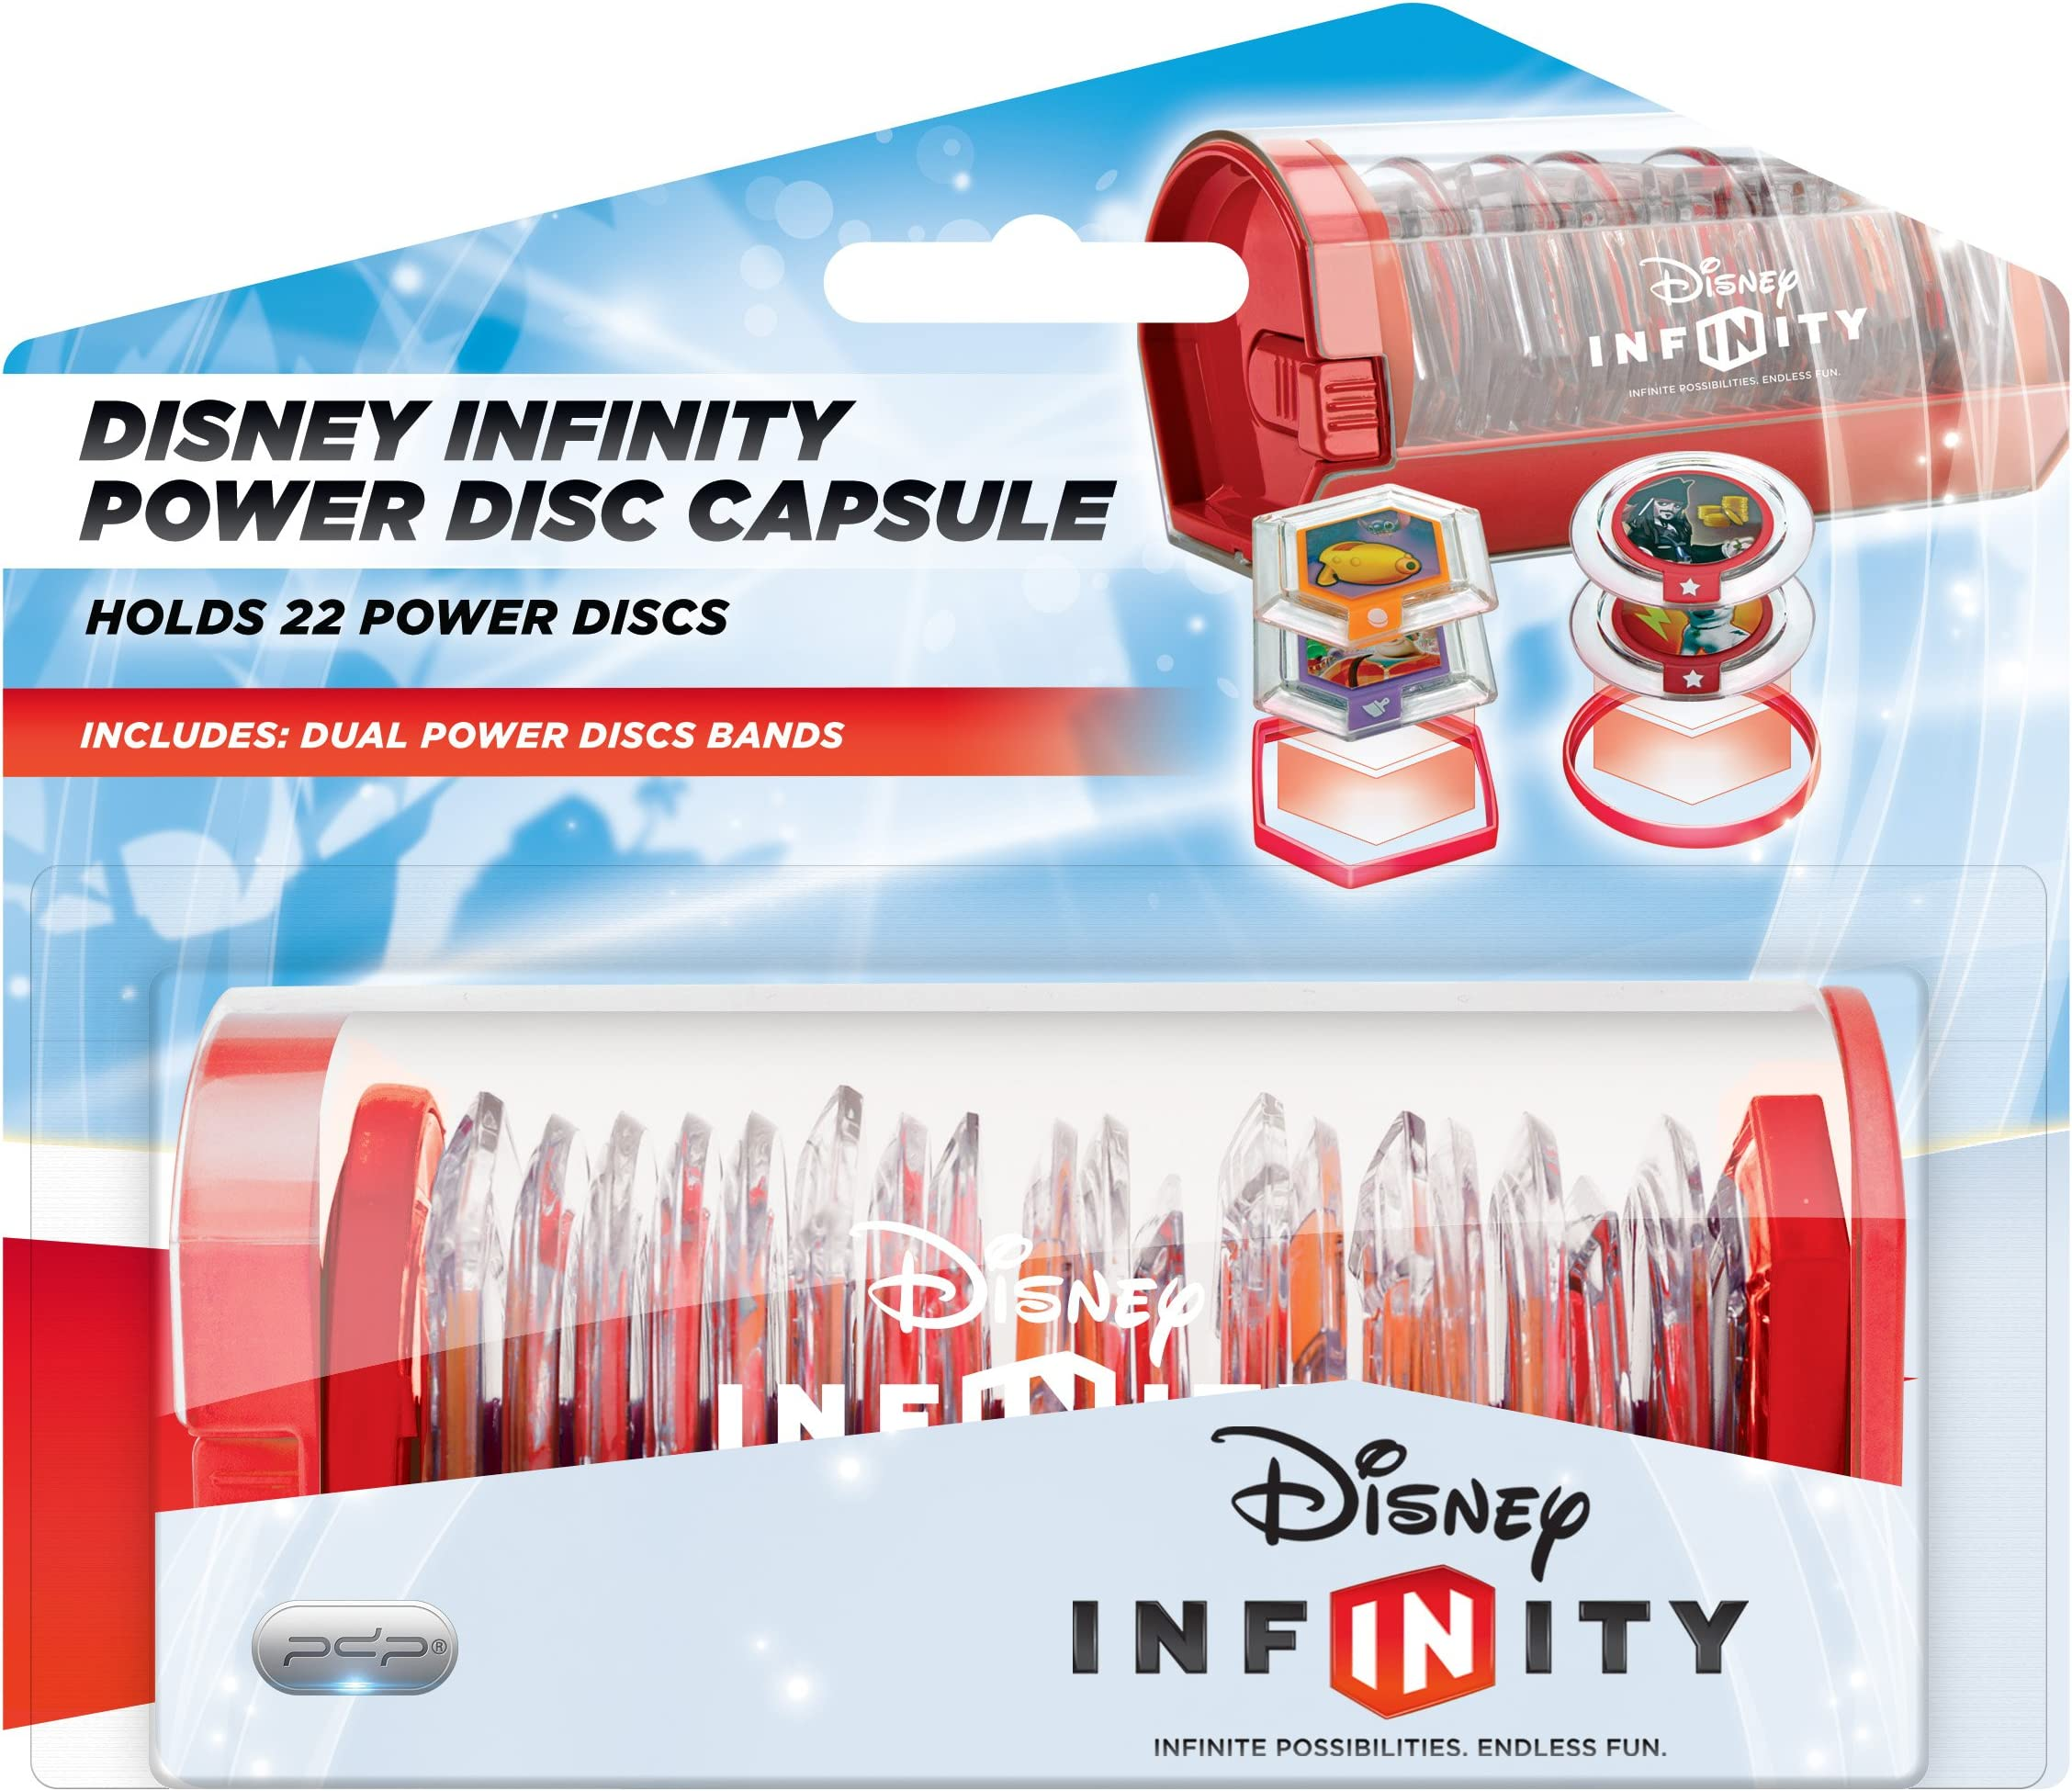 Amazoncom Pdp Disney Infinity Power Disc Capsule Video Games